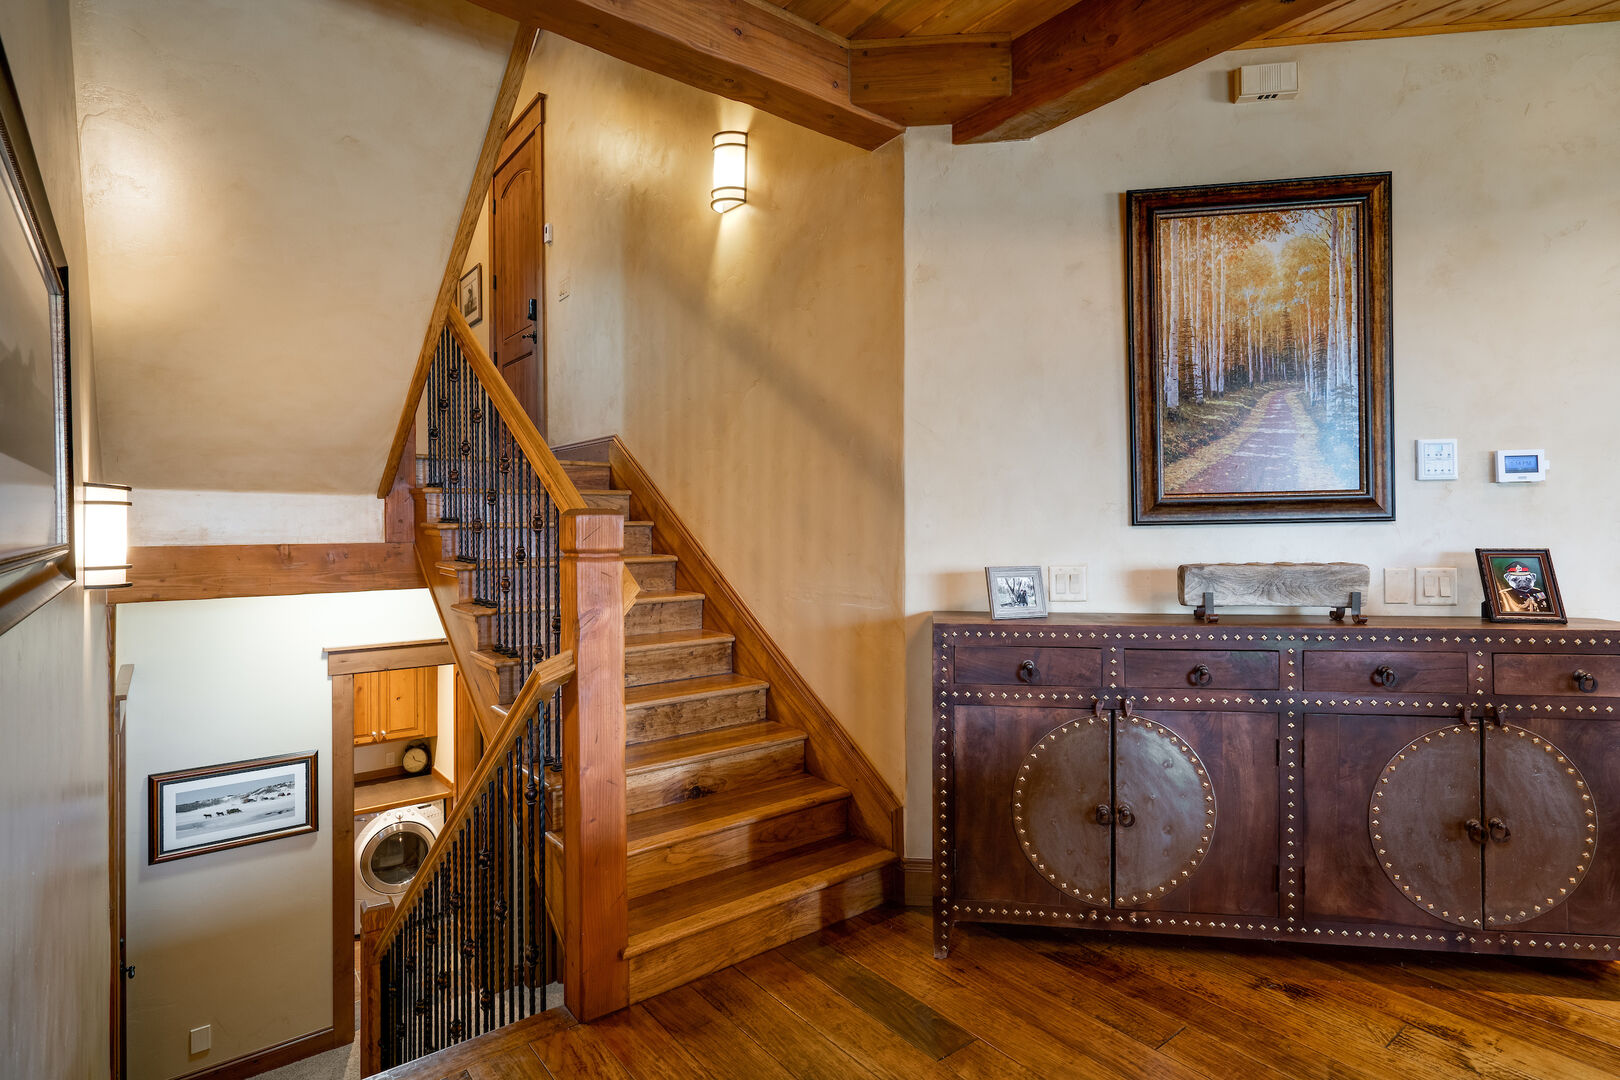 Stairs up and down to the bedroom options